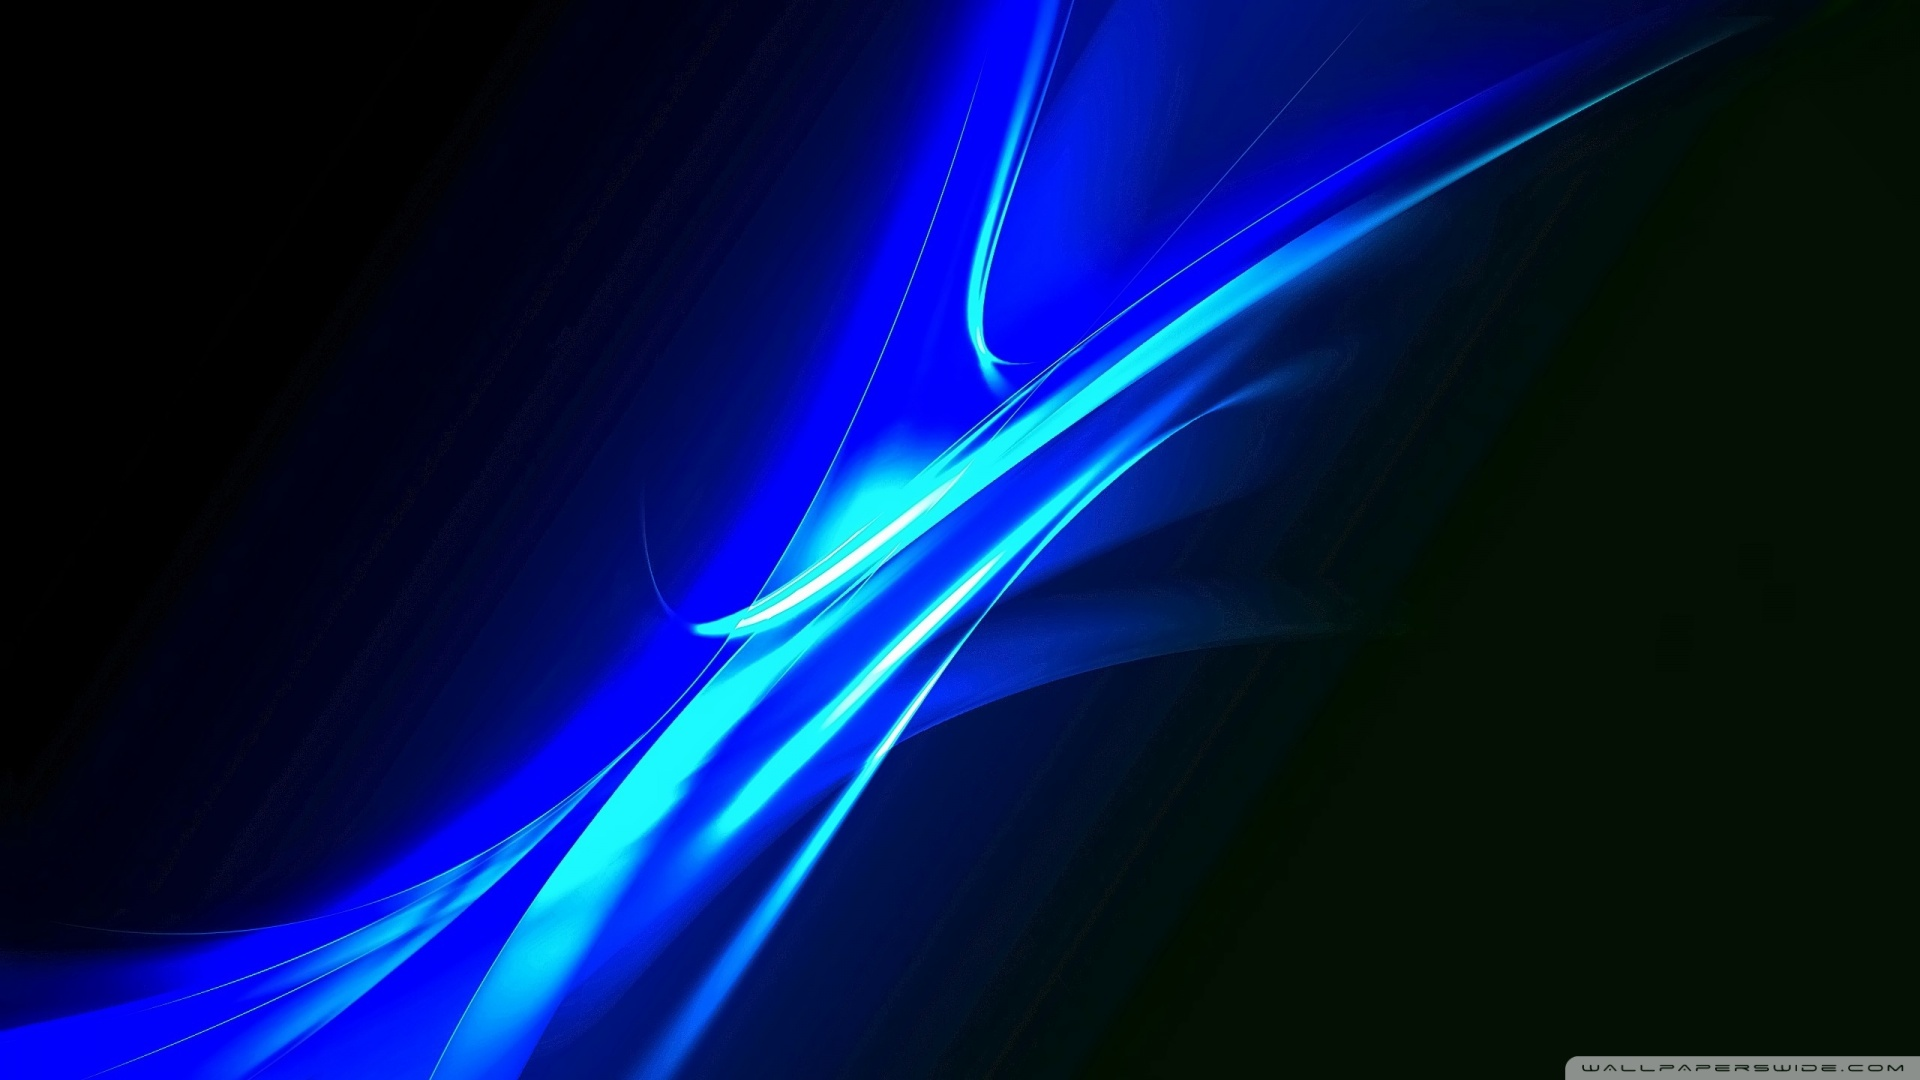 42+ 1920X1080 Blue Wallpaper on WallpaperSafari